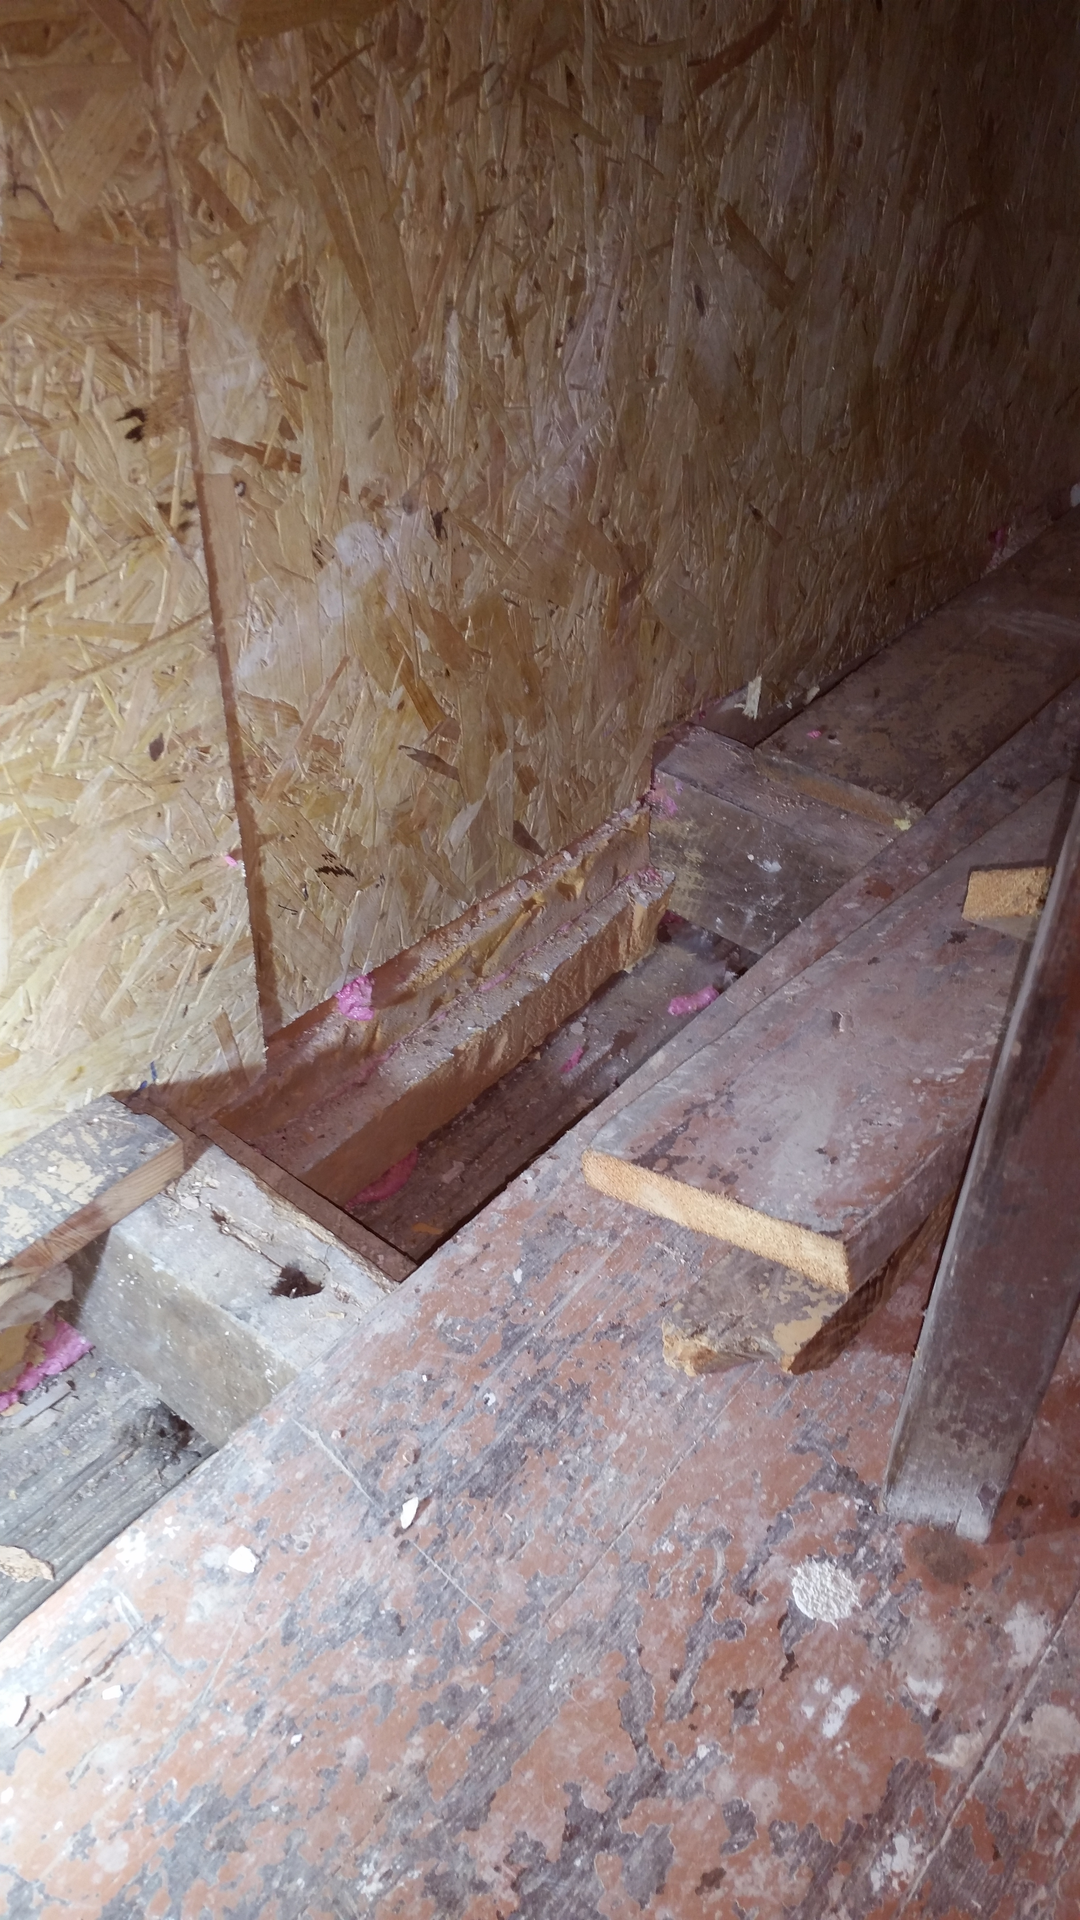 Insulating the gap under floor and over ceiling (George Miles dicenews.com)